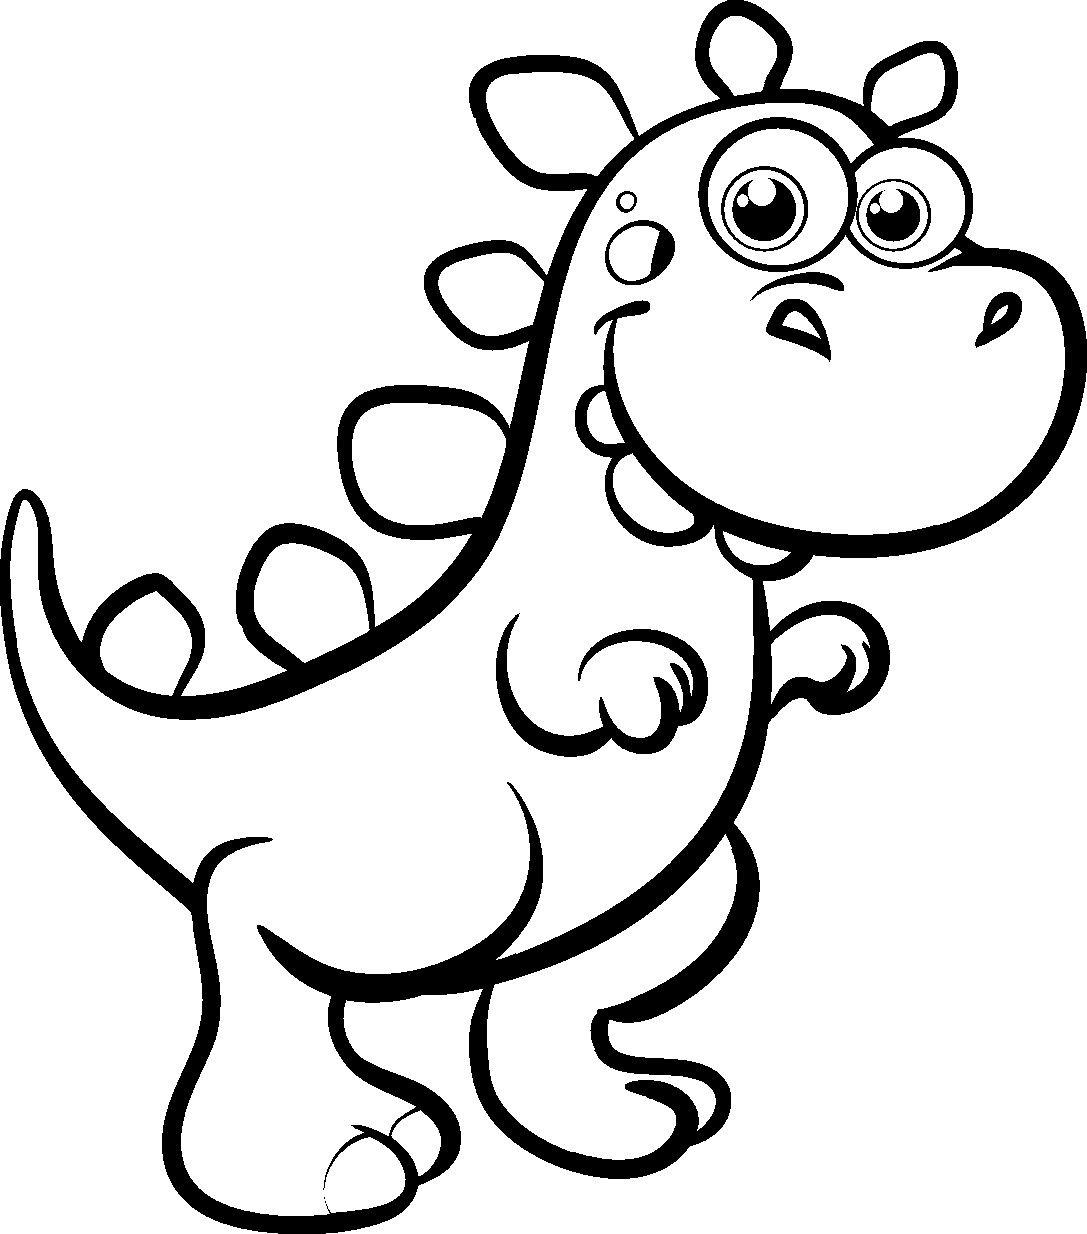 Pin By Daniela Vasile On Dinosaurs Dinosaur Coloring Pages